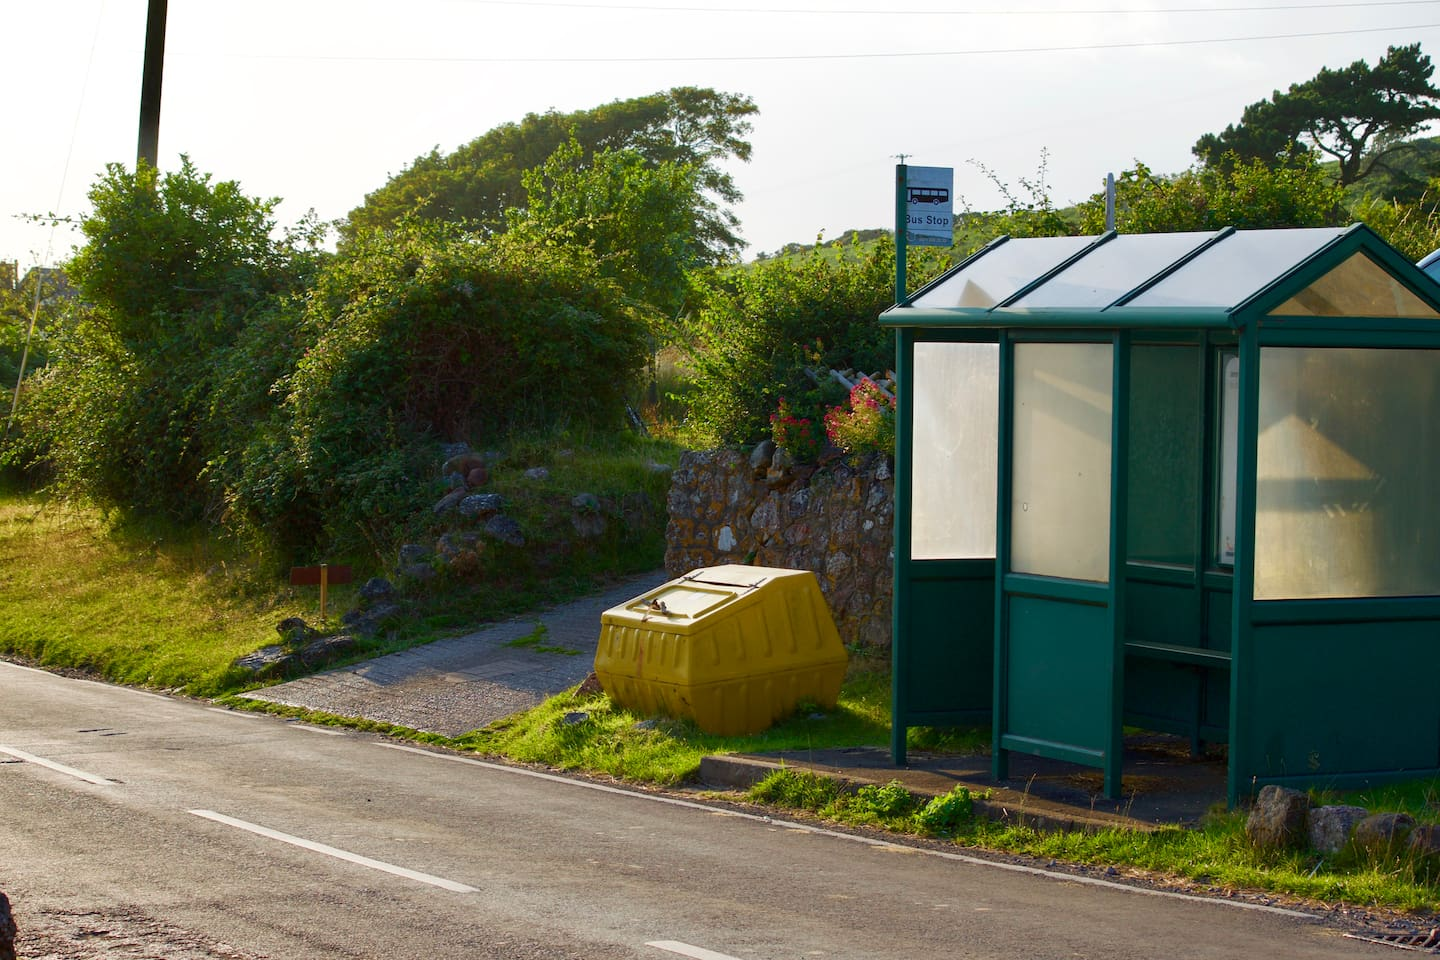 This is the entrance to our AirB&B...a yellow road grit bin and the only bus shelter in the village and when you look u the drive you will see our home ....in the next photo and again as a reference we are the 4th house down the hill .